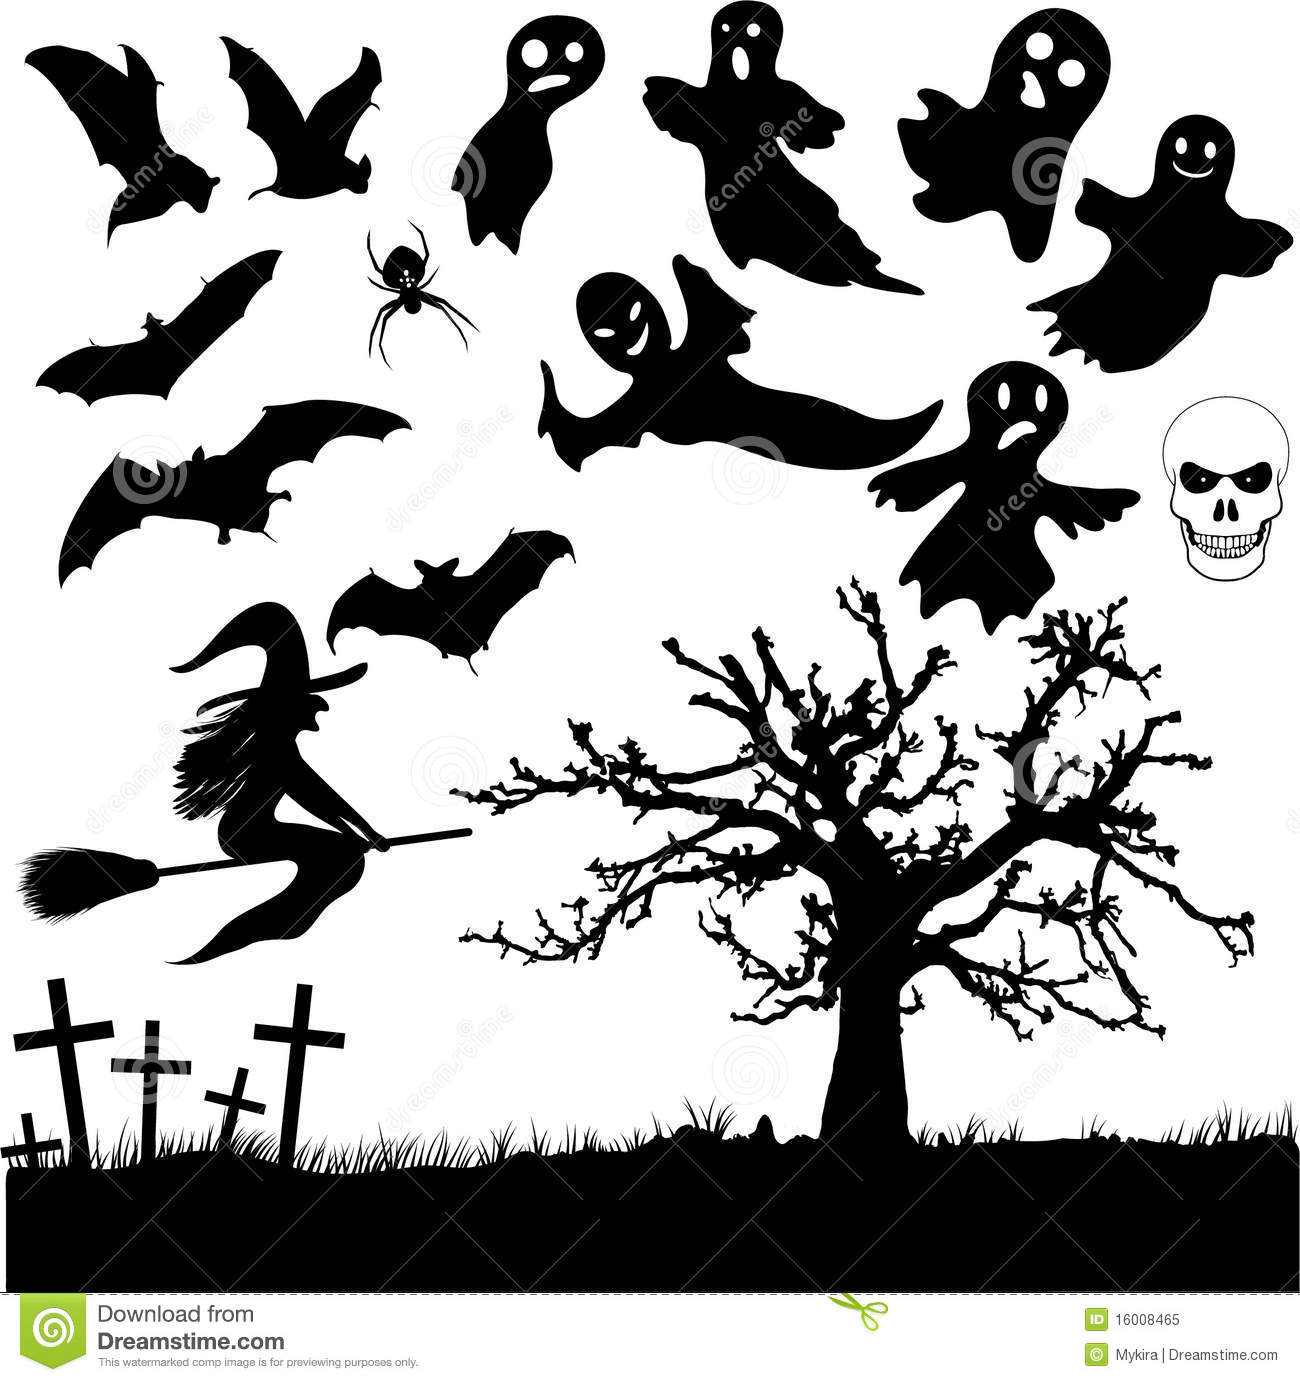 Cricut Home Decor Ideas Collection Of Halloween Silhouettes Royalty Free Stock